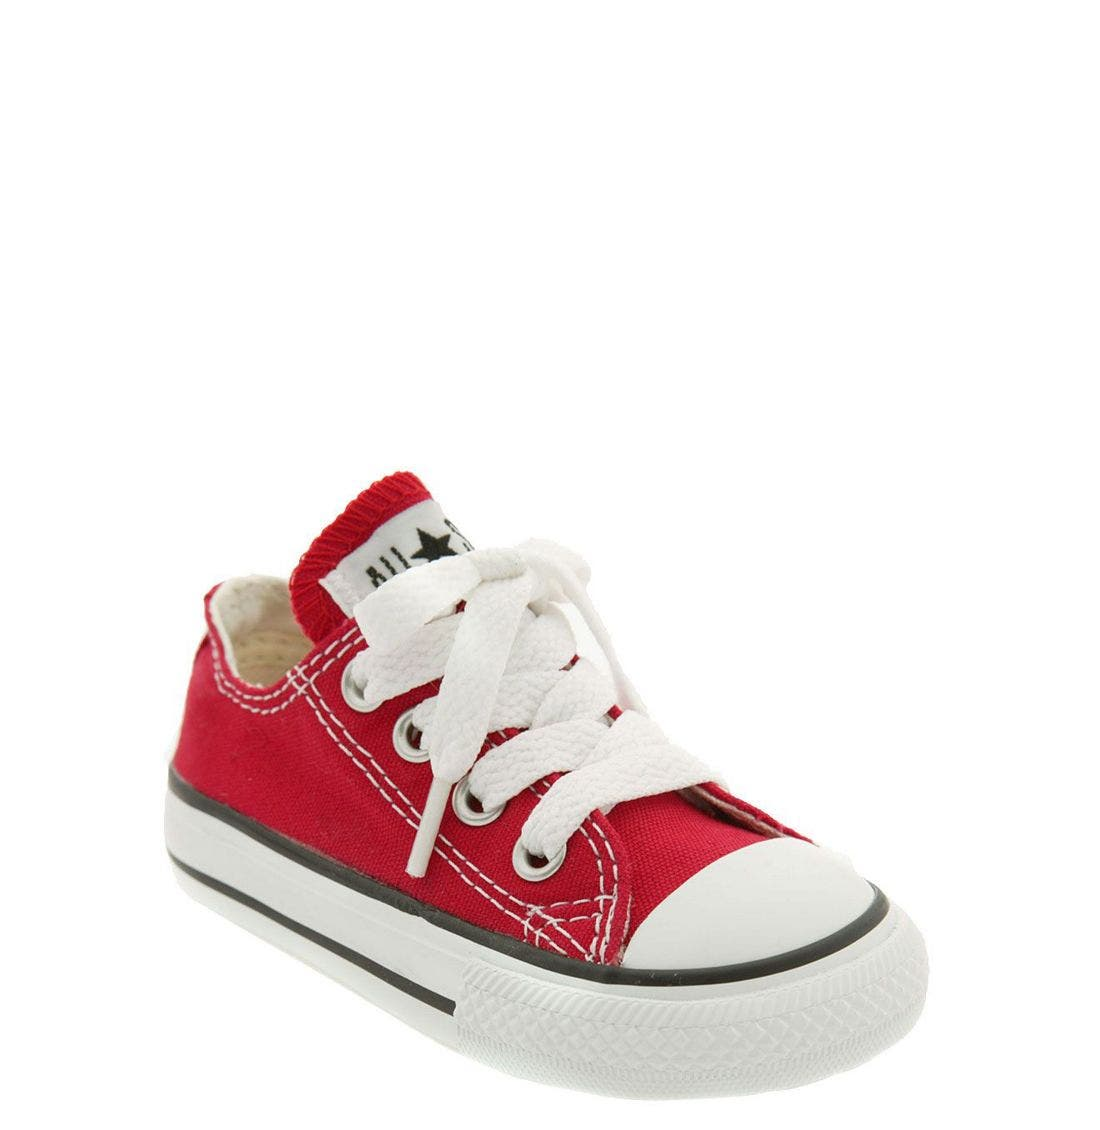 CONVERSE, Chuck Taylor<sup>®</sup> Low Top Sneaker, Main thumbnail 1, color, RED